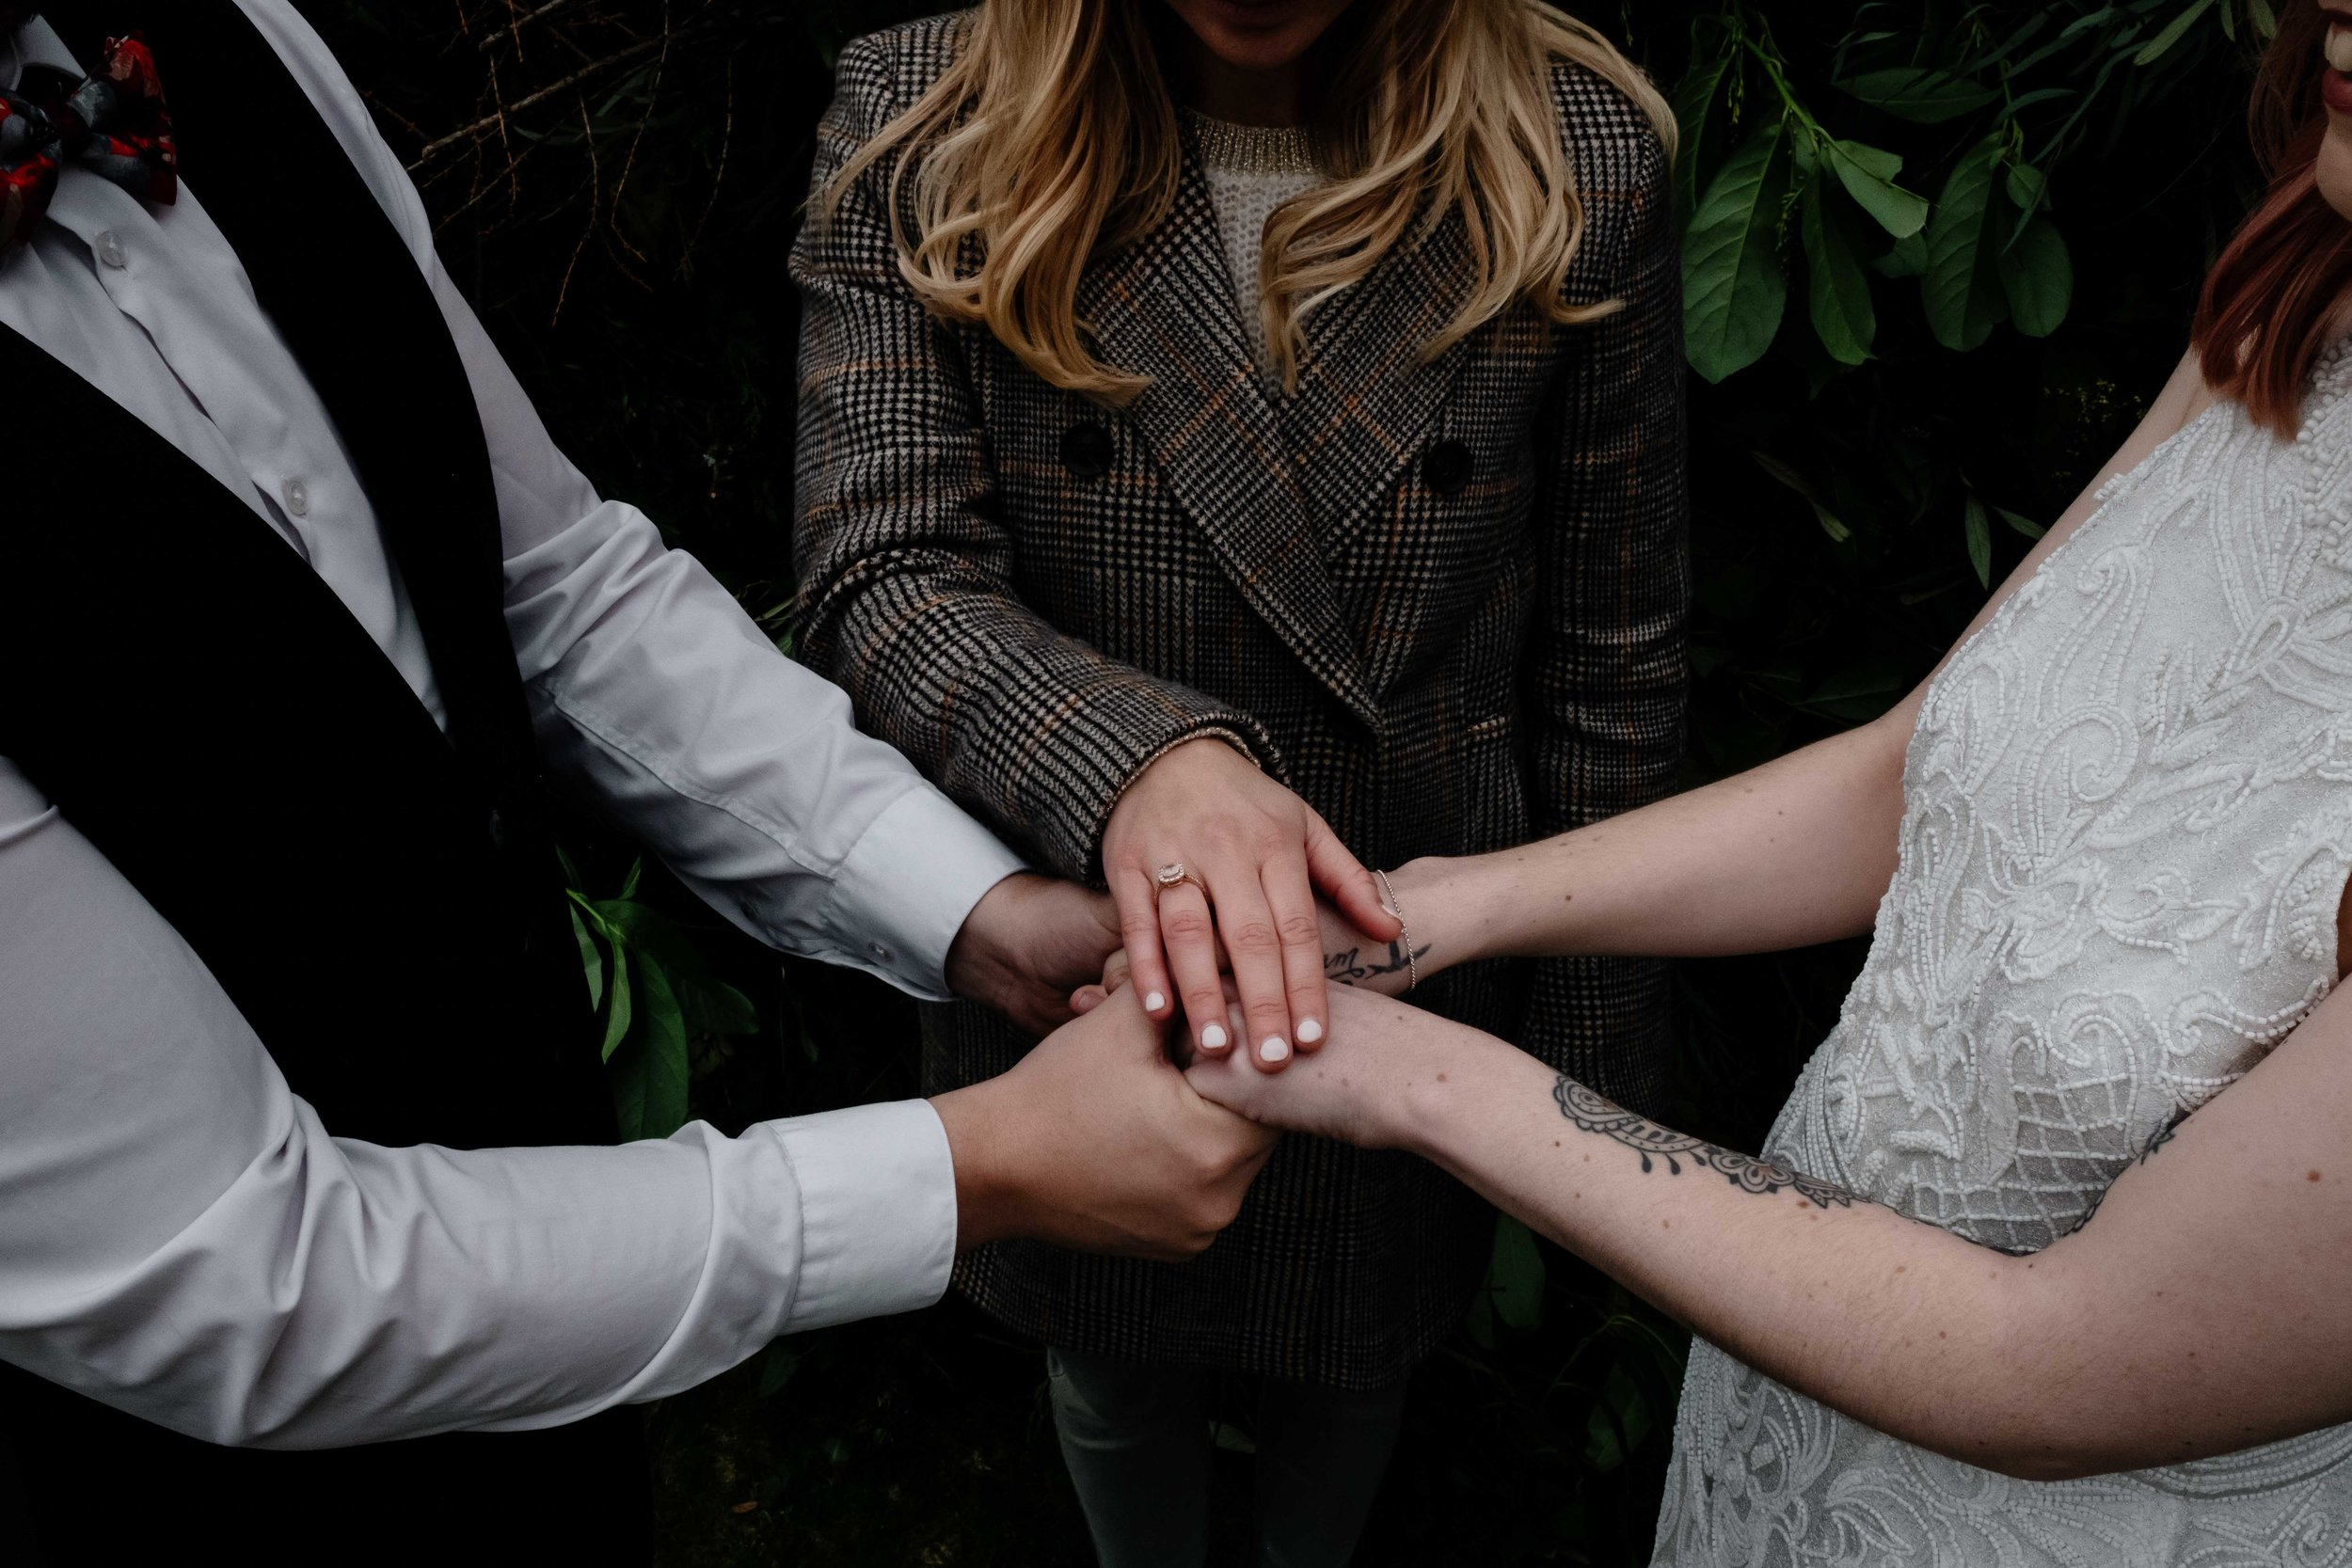 A close up shot during the wedding ceremong of an elopement and the celebrant's hands are on top of the couples.